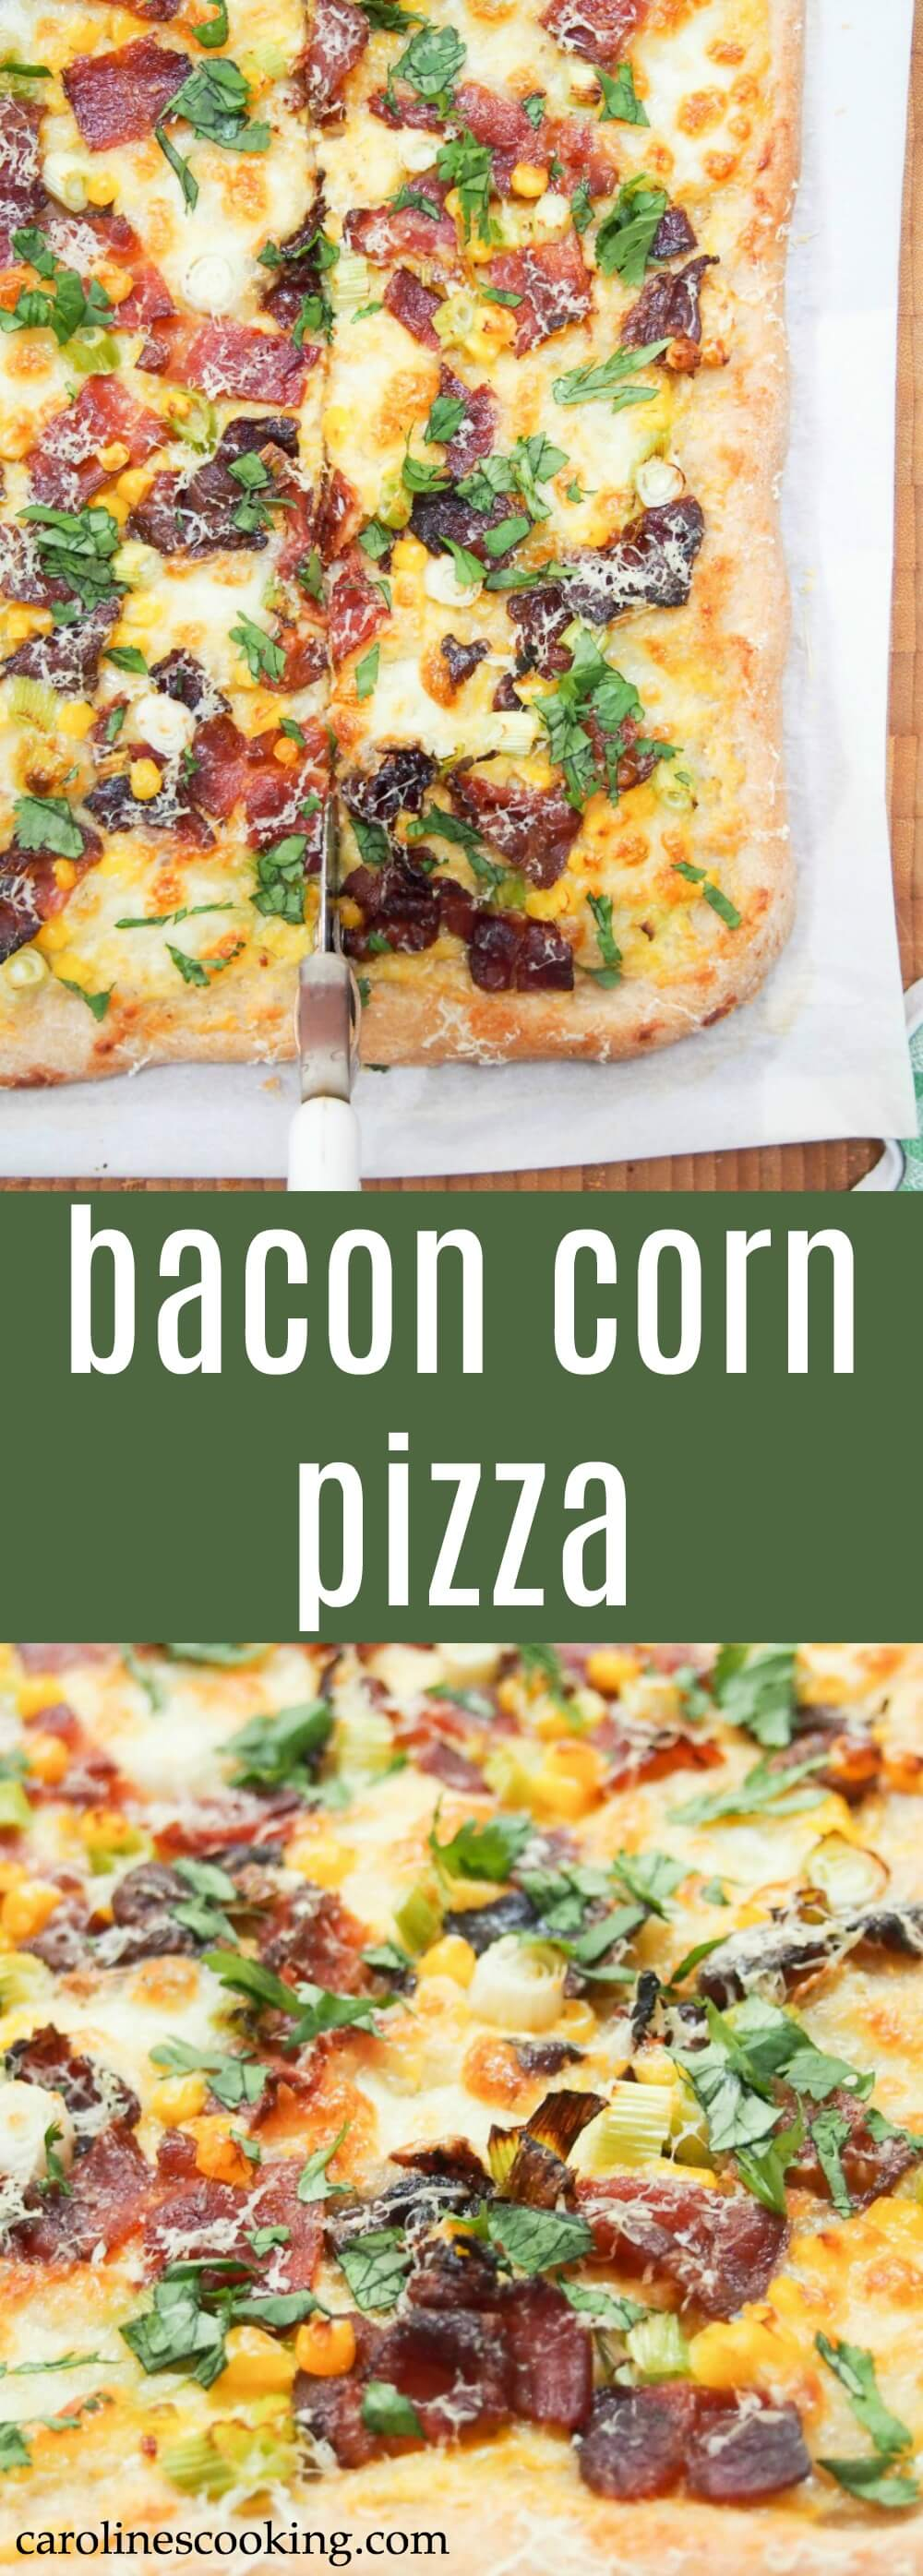 This bacon corn pizza has a double doze of corn for a less than typical but incredibly delicious slice. It's a flavorful sweet-salty mix that's addictively good.